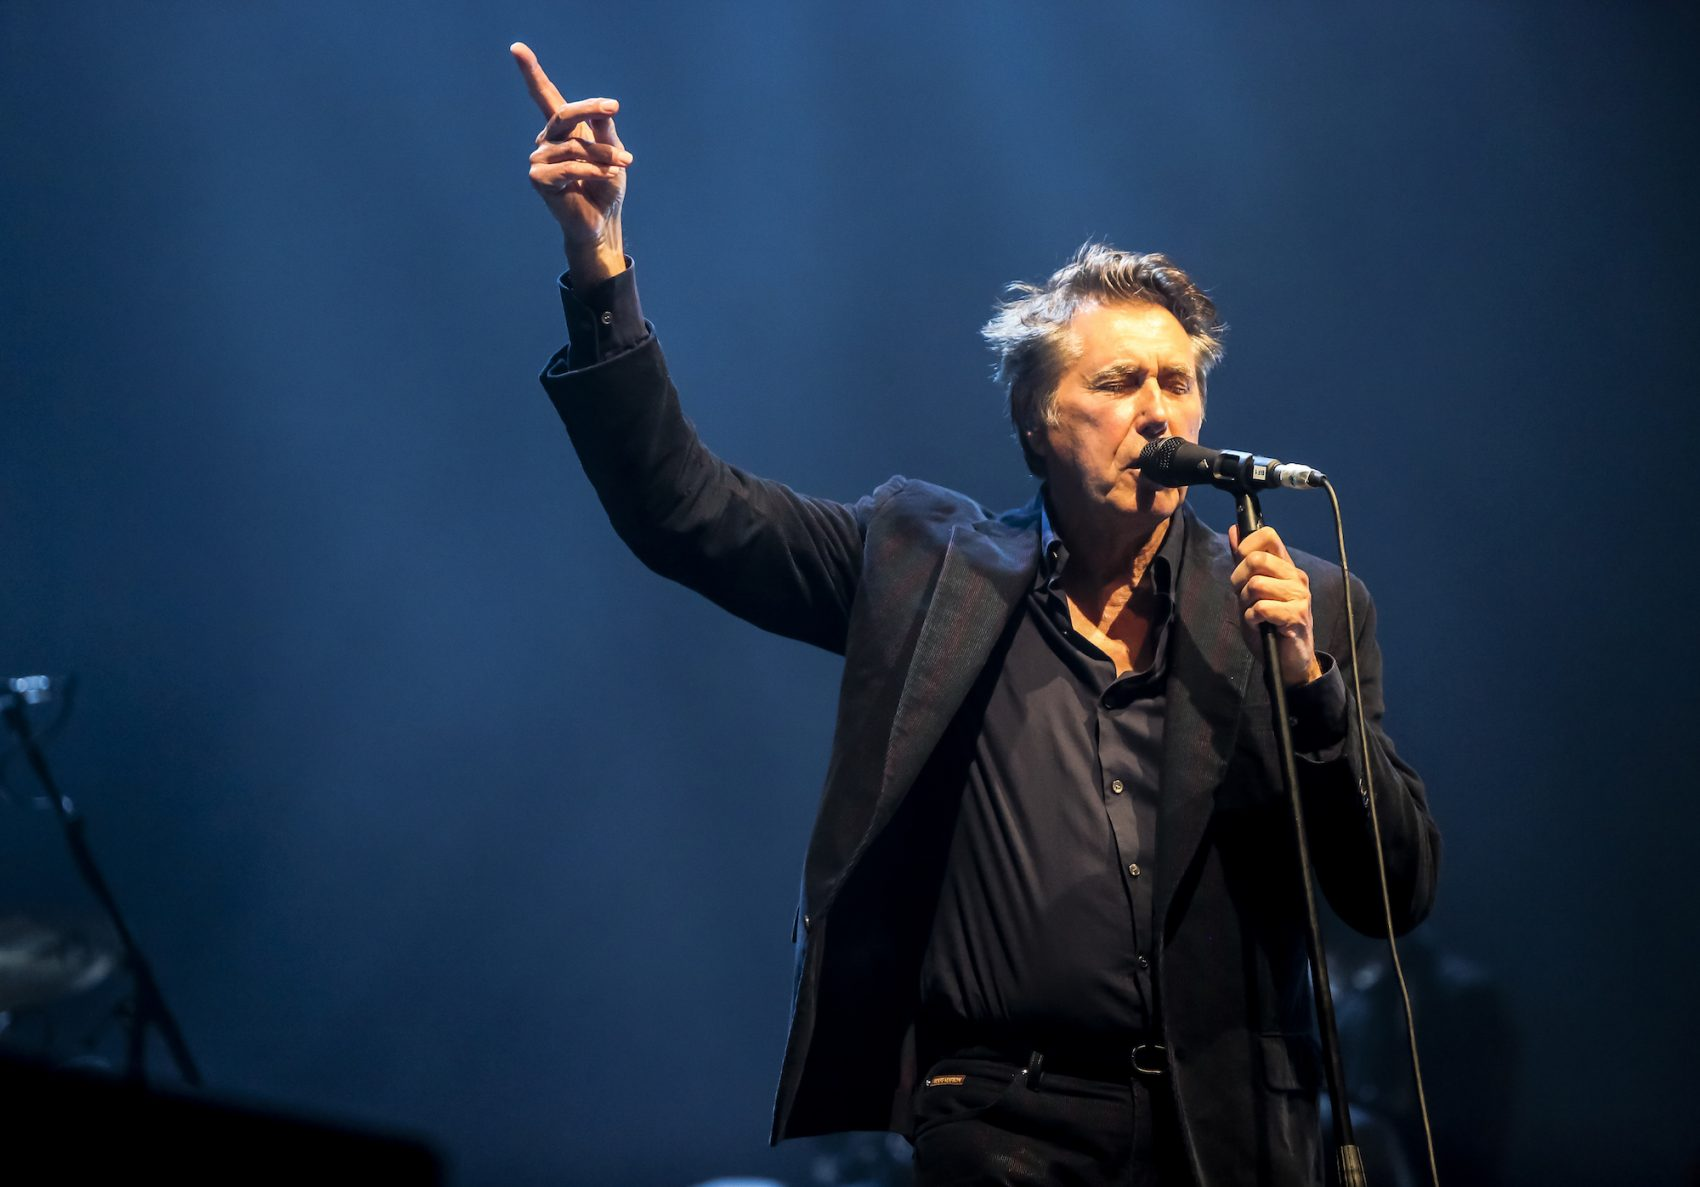 Bryan Ferry performing live at the New Theatre Oxford in England on May 9, 2015. (Courtesy Bryan Ferry)